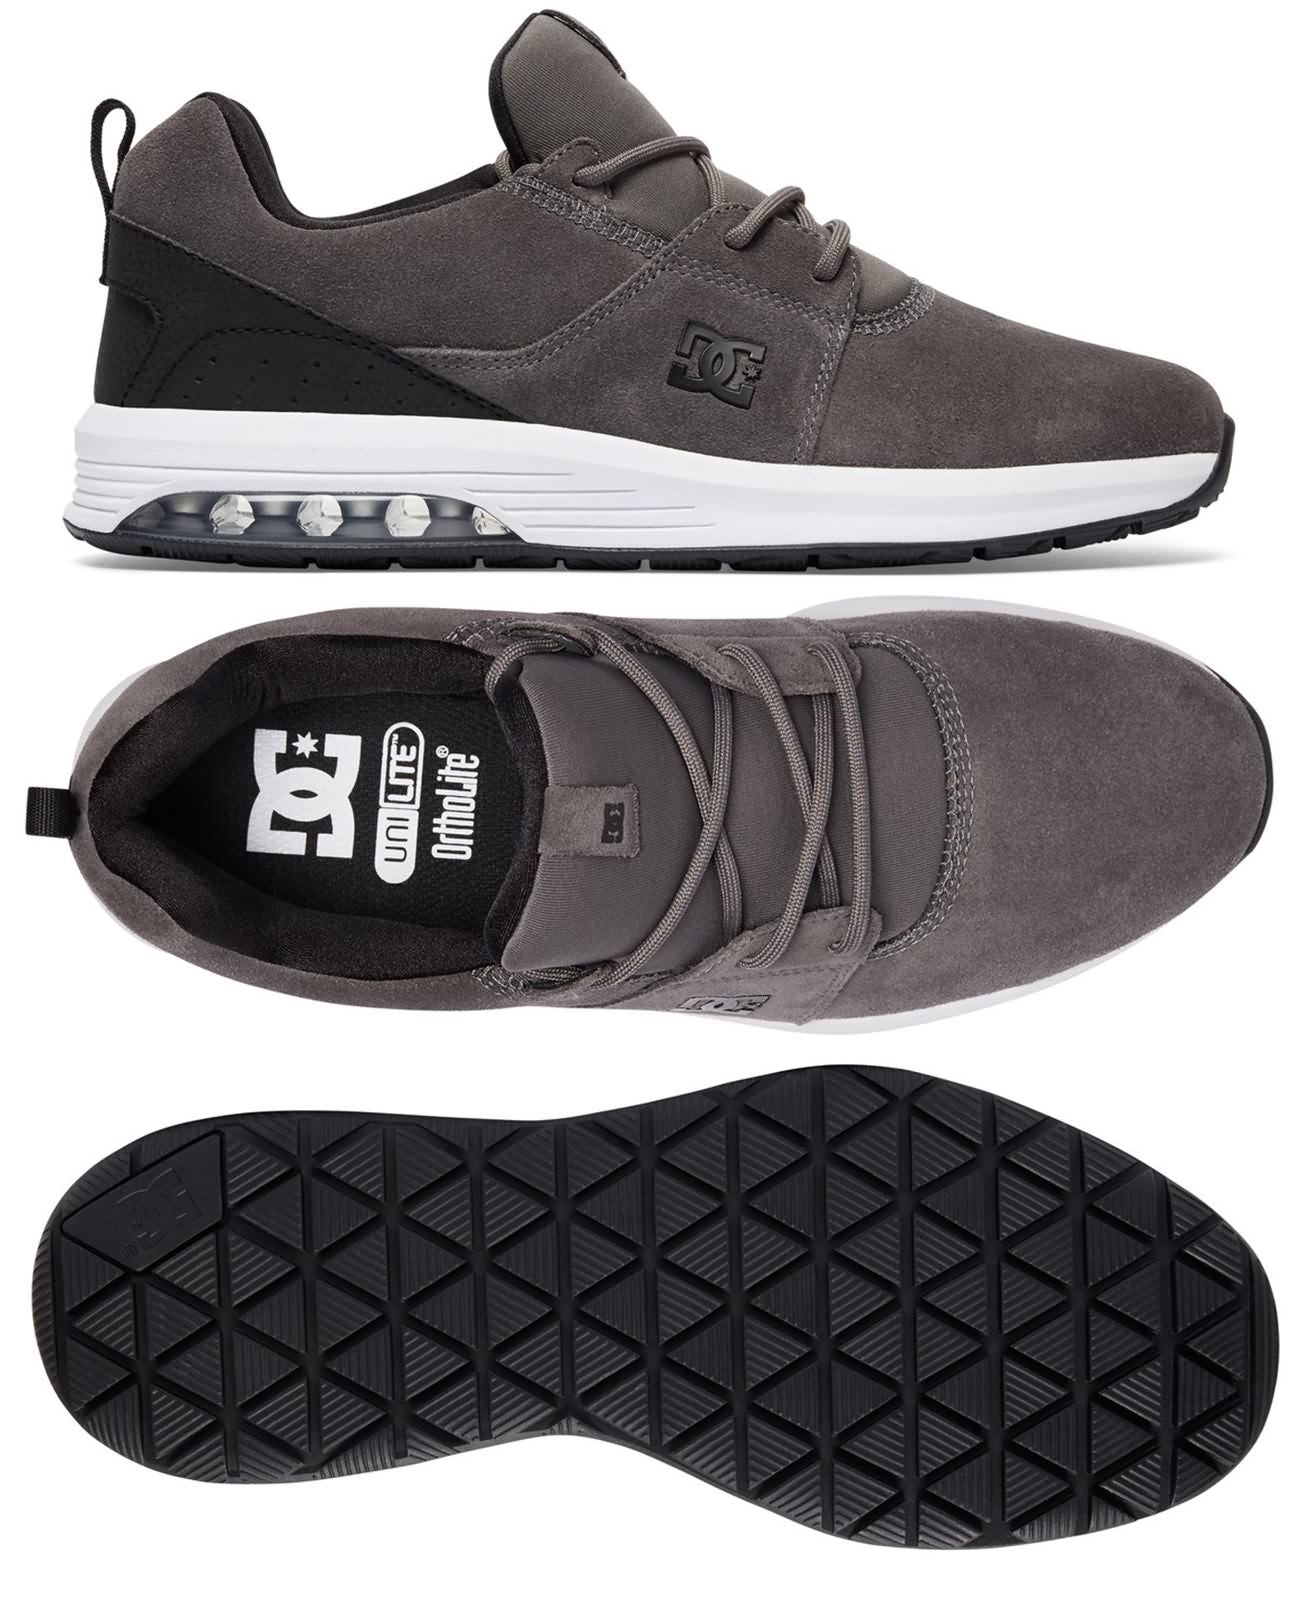 DC Shoes Summer 2017 Skateboarding Skate Sneaker Footwear Collection ... f875639e4e052